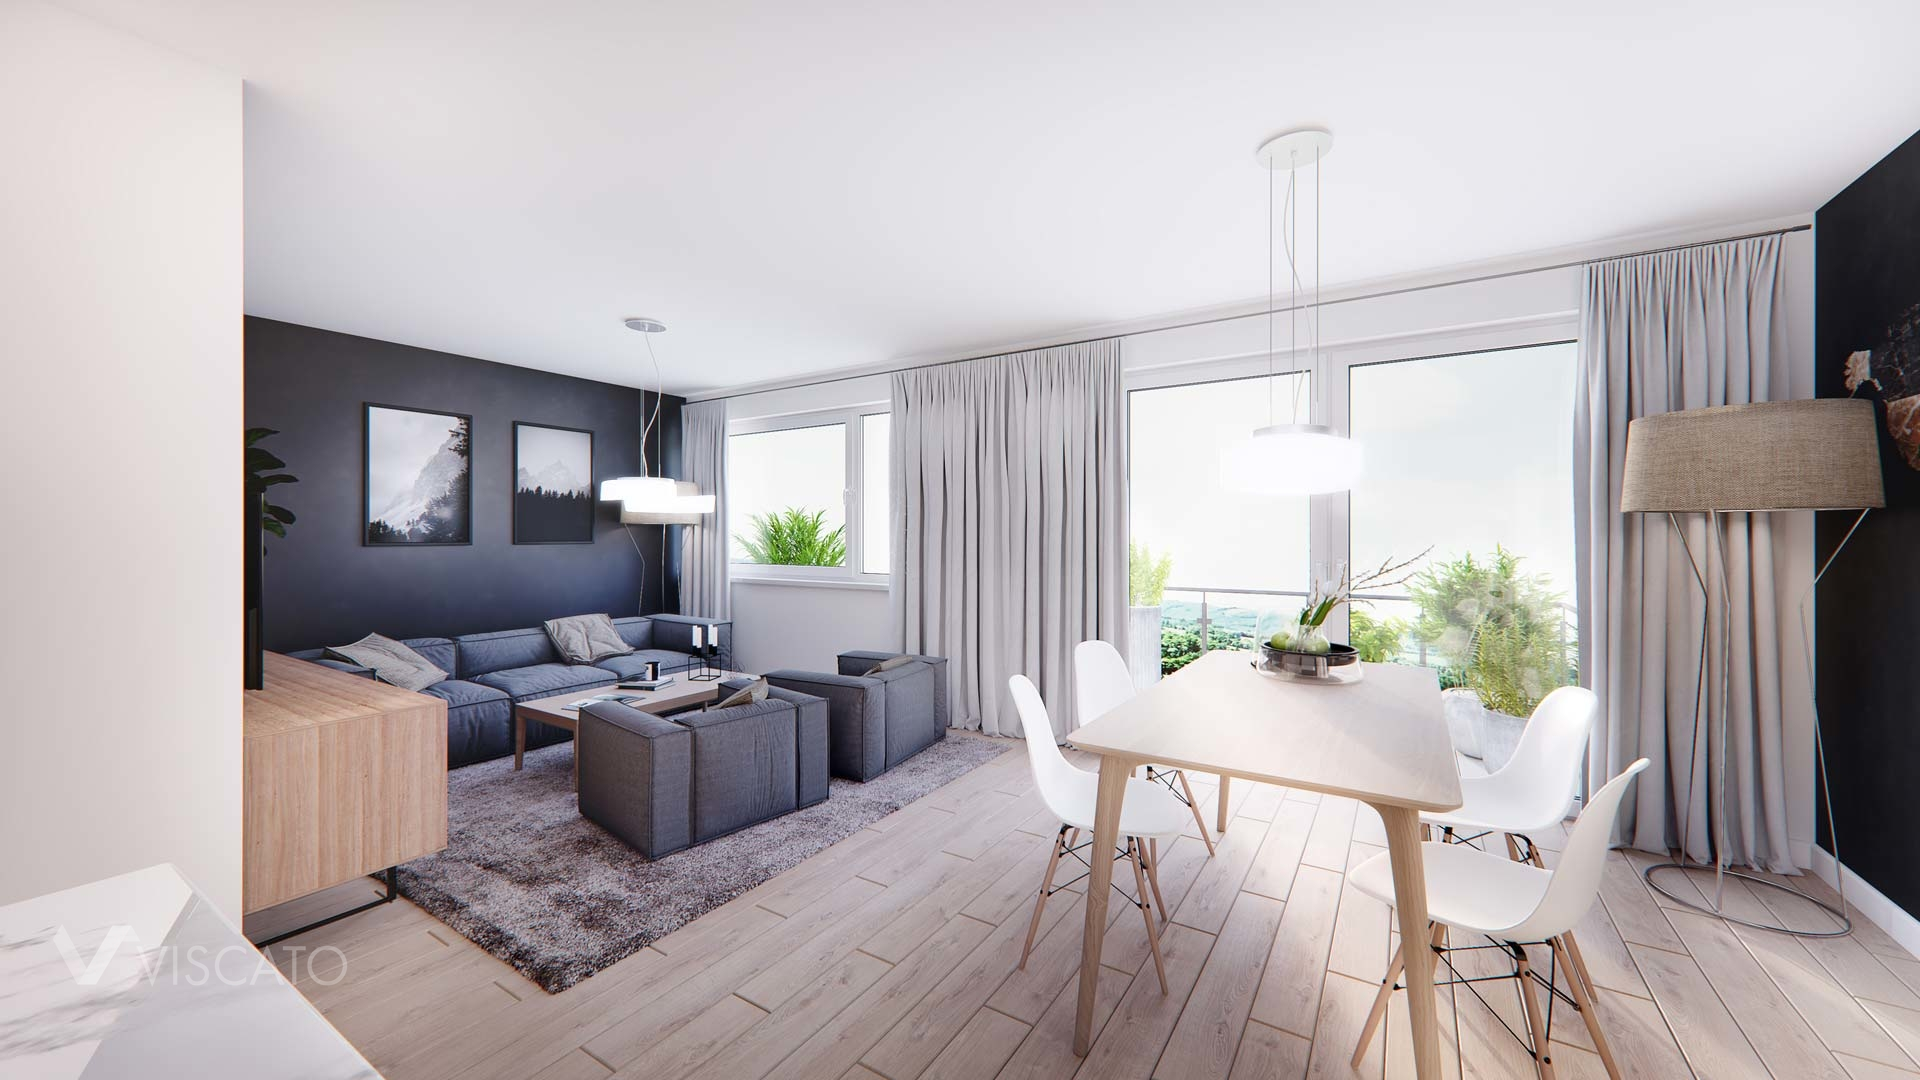 Contemporary style interiors in 3D, Viscato